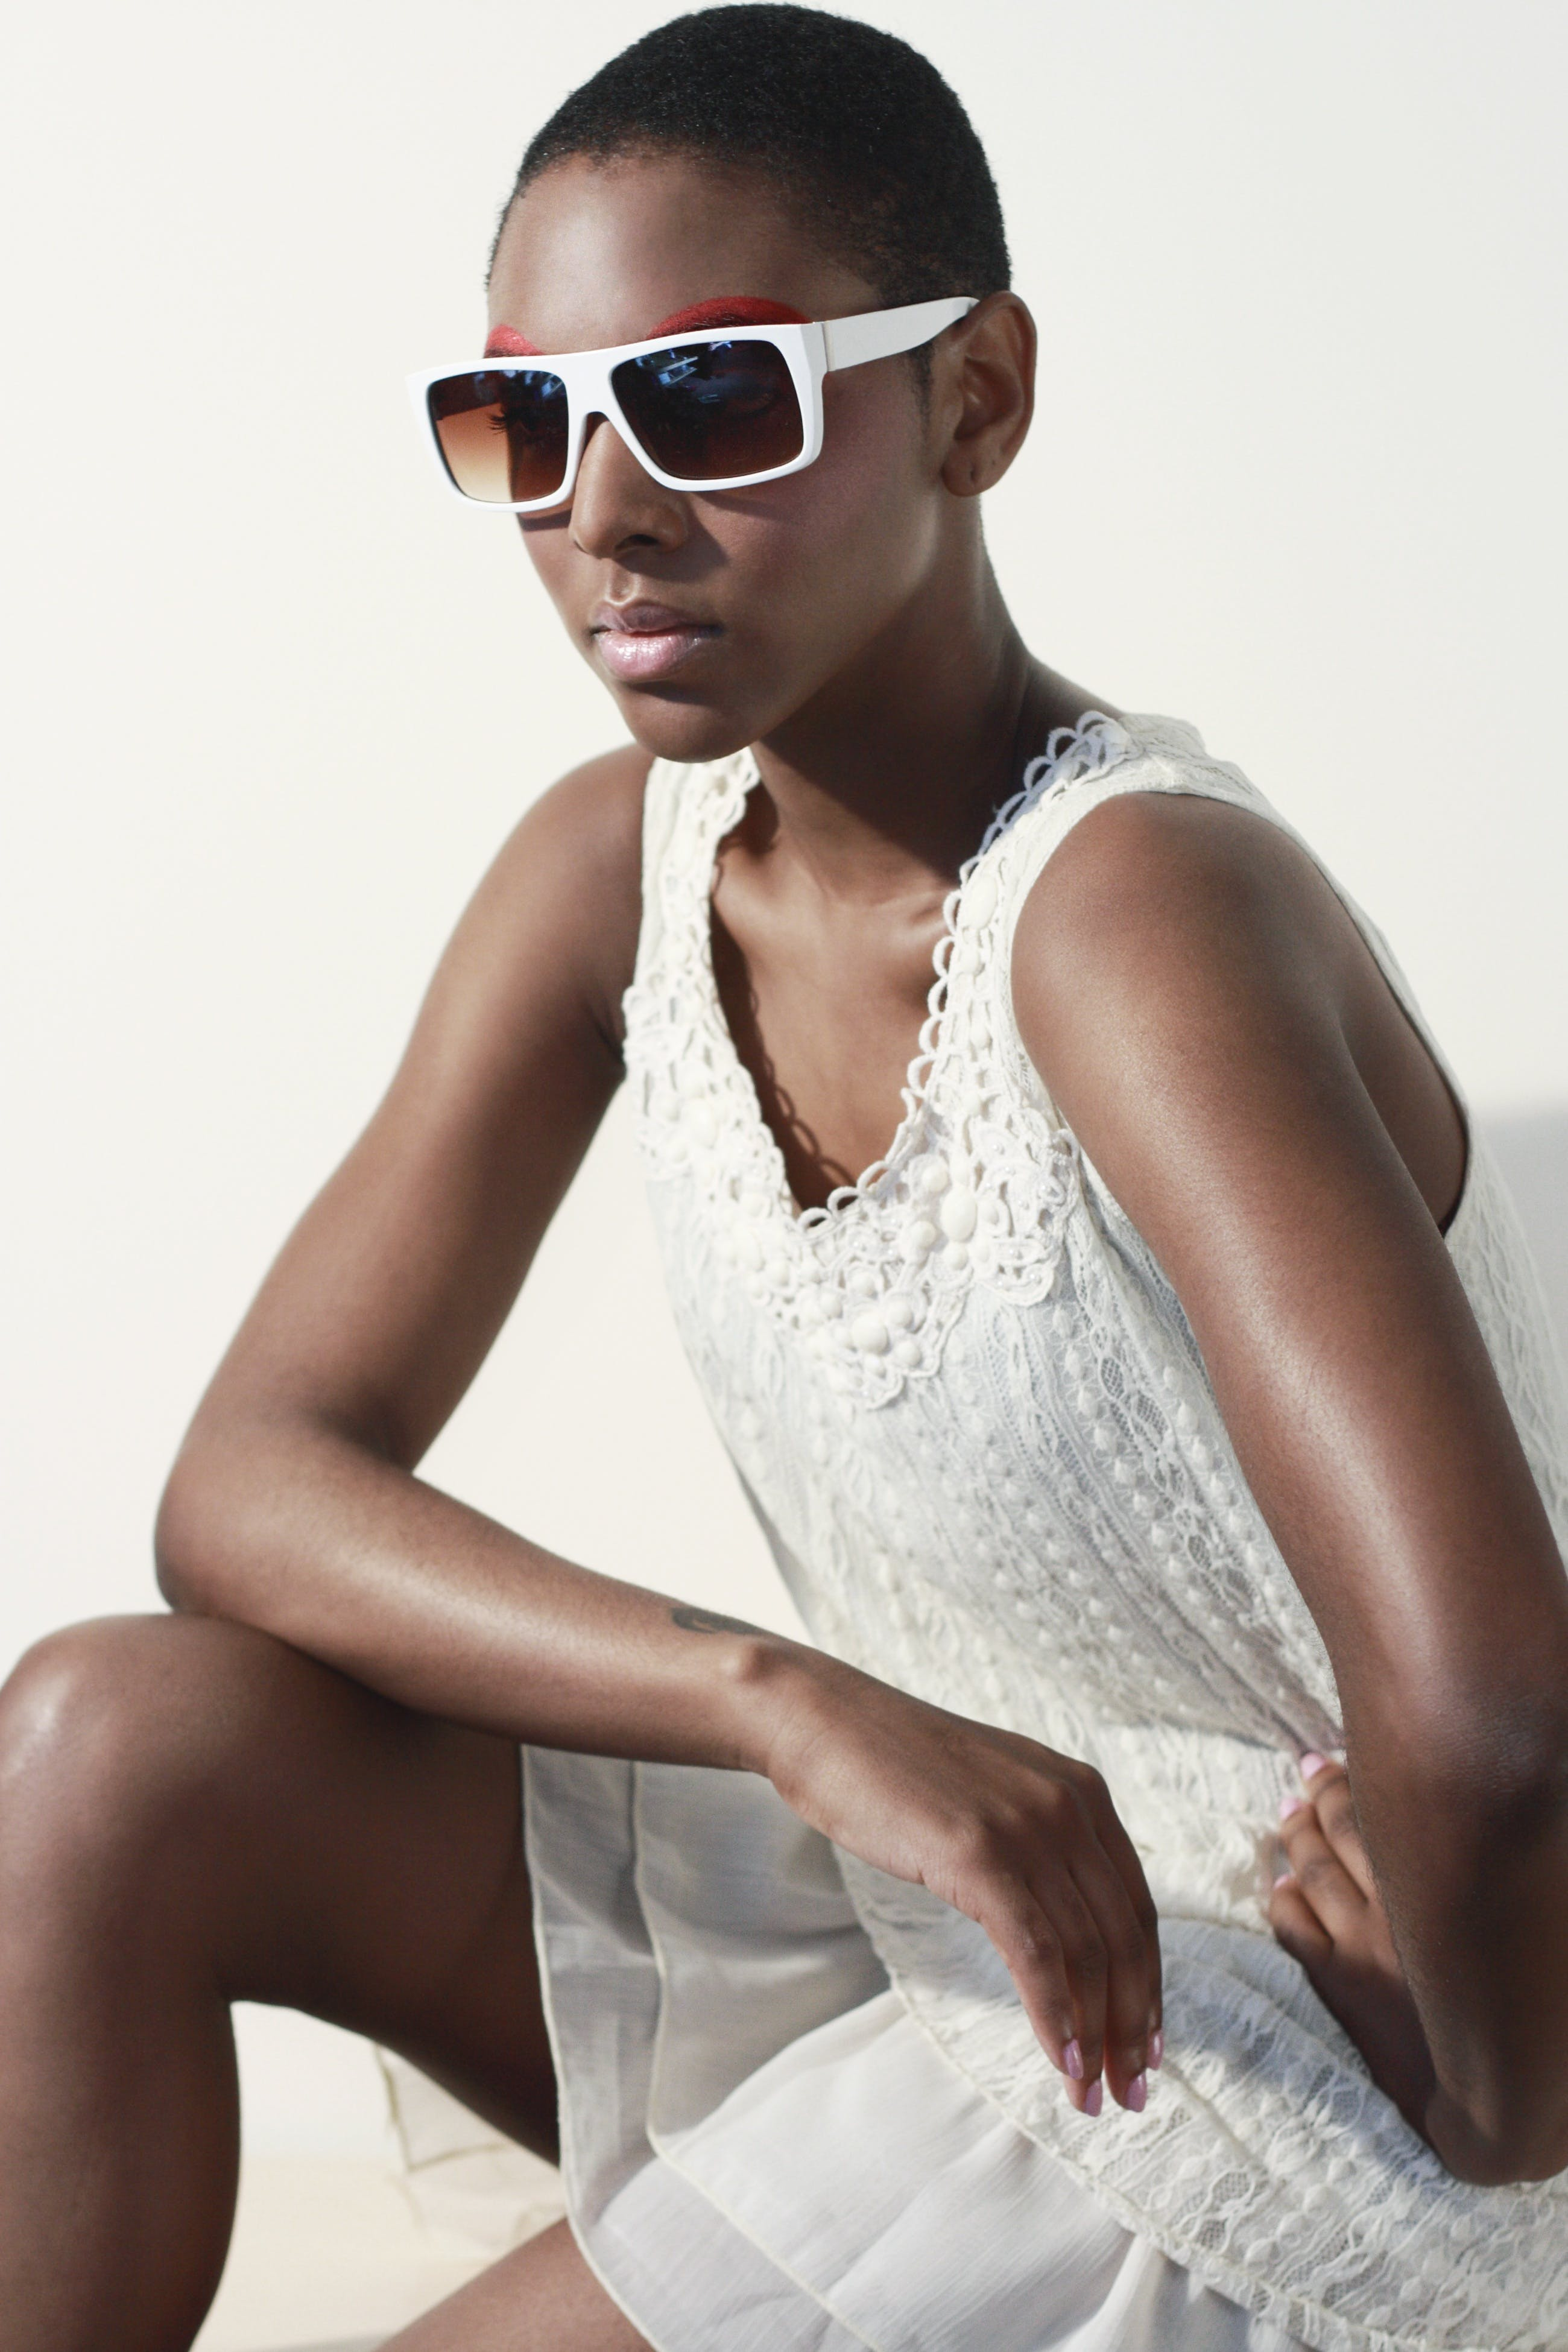 Woman Wearing White Tank Dress and White Frame Sunglasses Sitting and Making a Pose